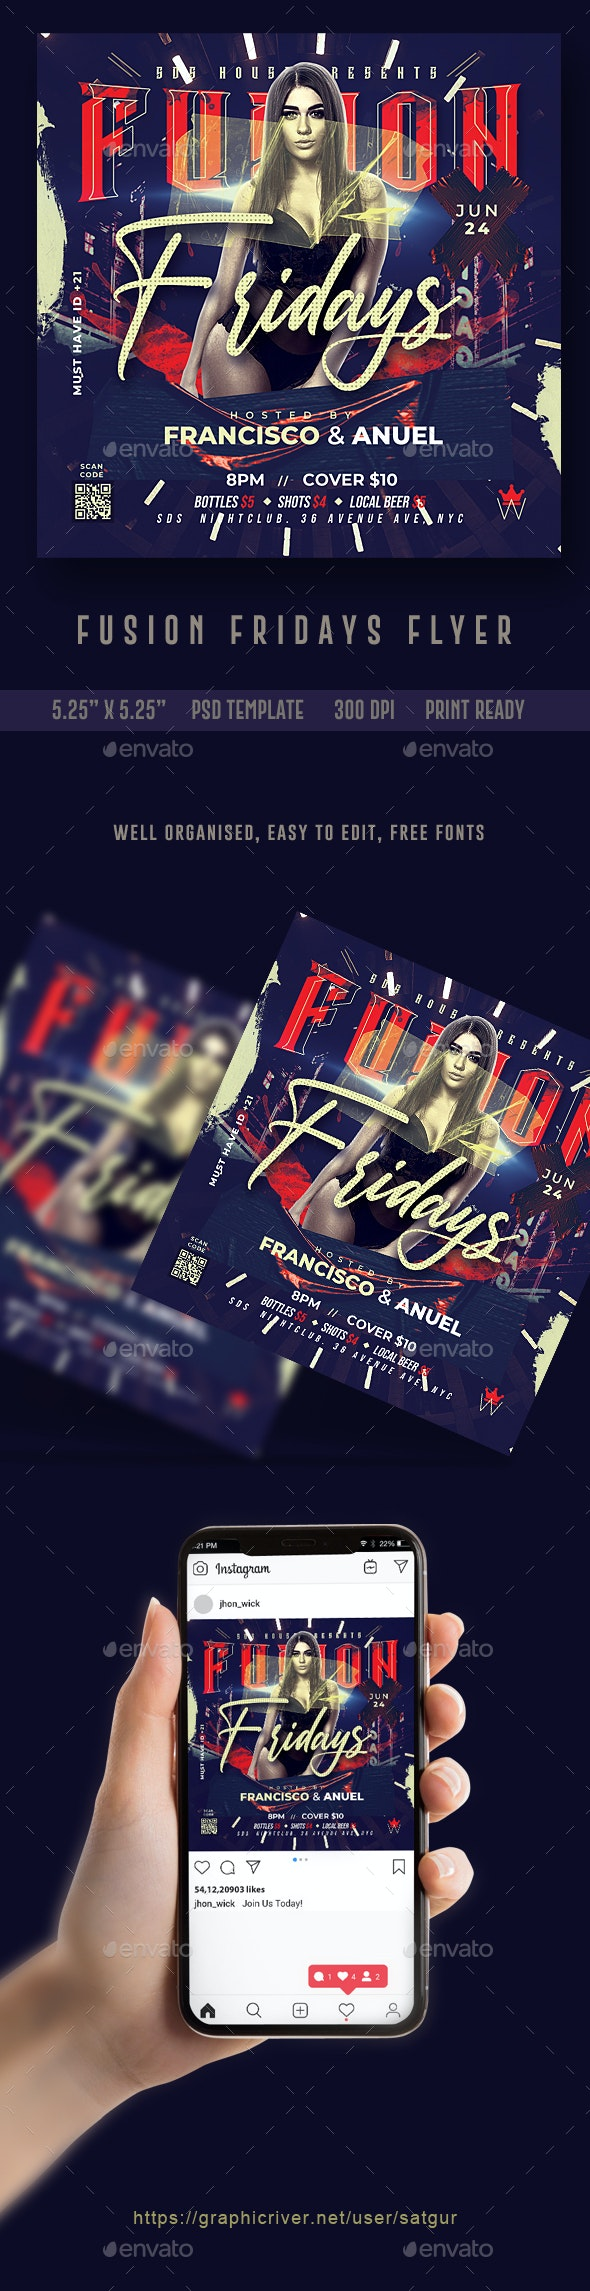 Fusion Fridays Flyer Template - Clubs & Parties Events